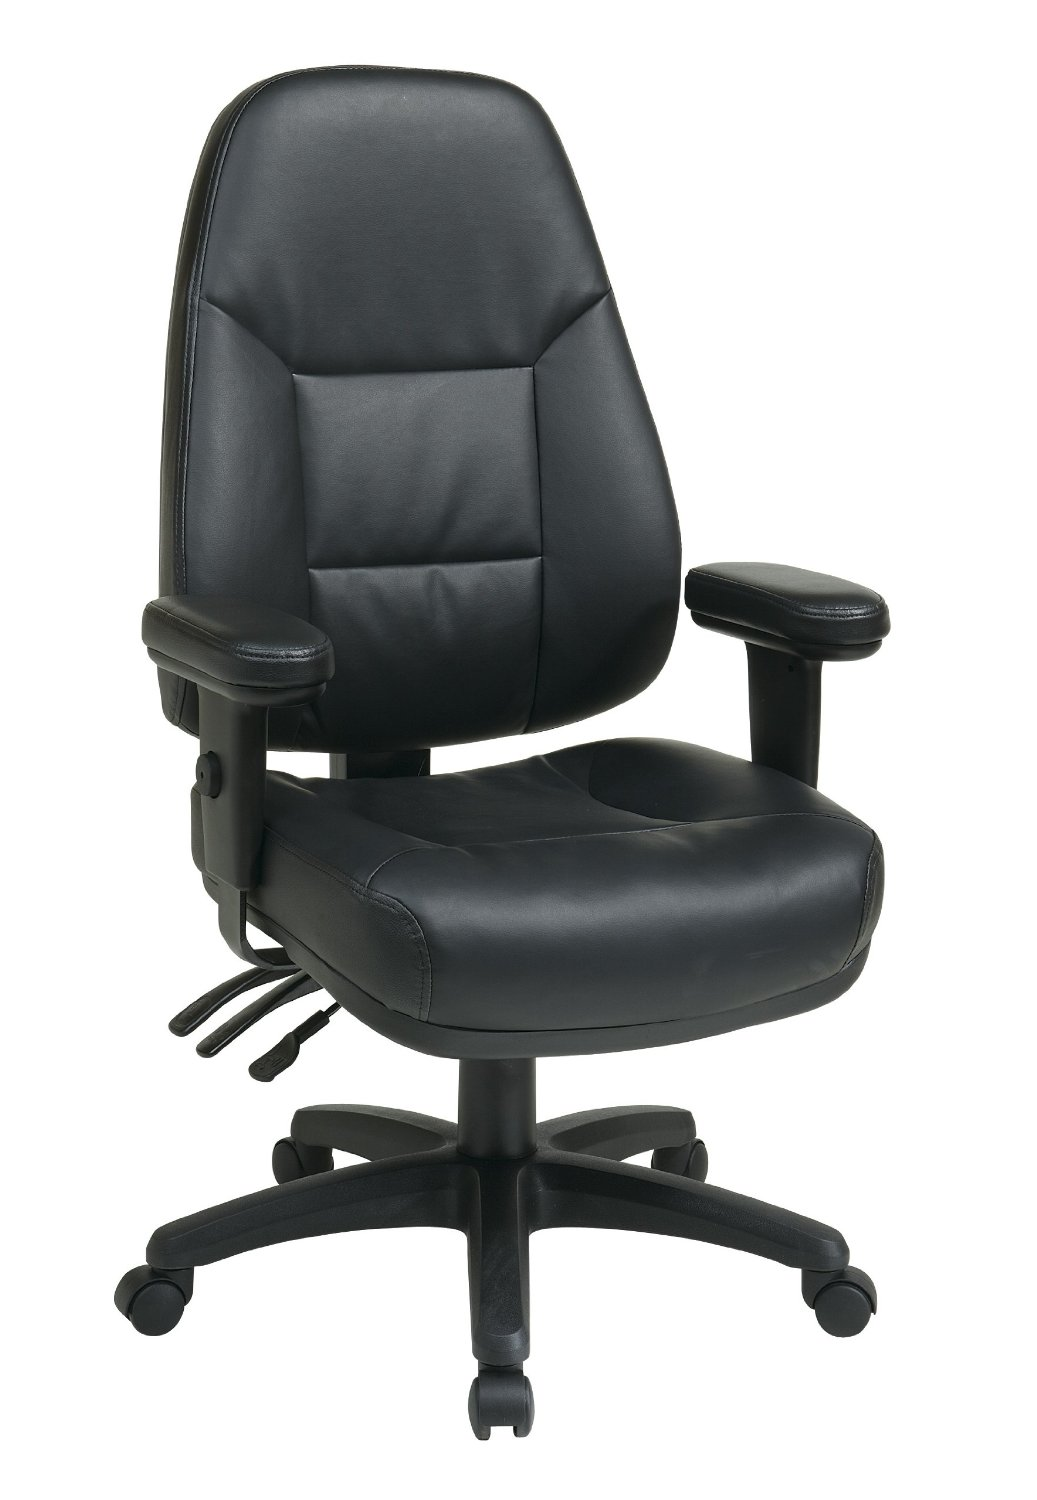 Executive Office Chairs: Office Star WorkSmart